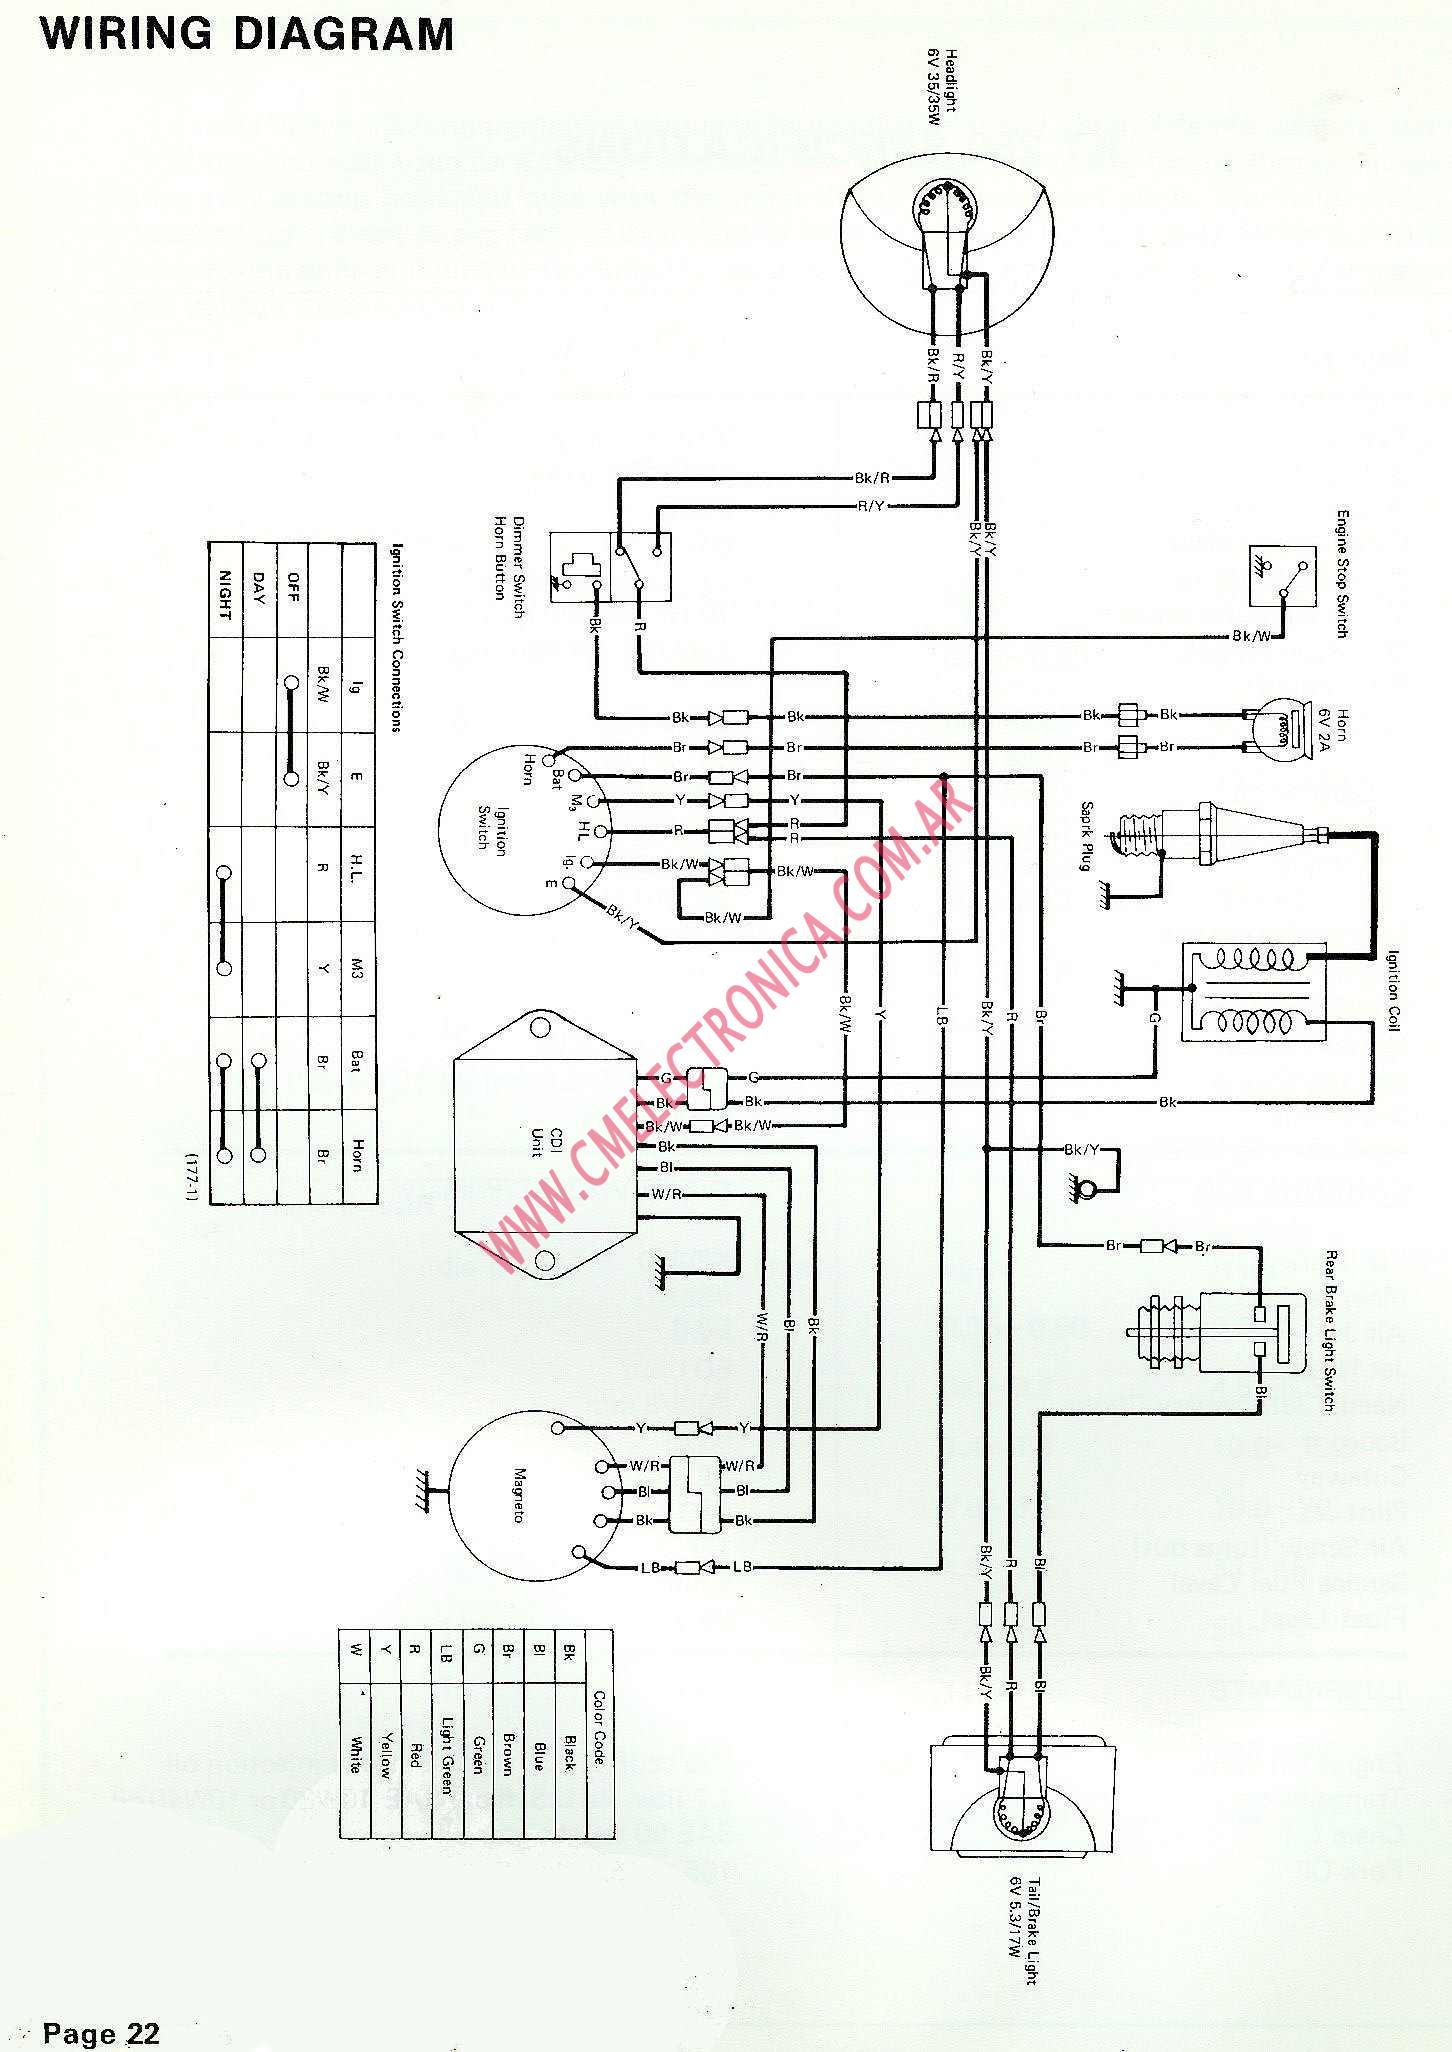 Engine Parts Diagram For Moving furthermore Wiring Schematic 1994 Kawasaki Klx 650 additionally Klr 650 Wiring Diagram likewise 1200711 Klr 600 Help Please moreover Chevy Fuel Pump Relay Location. on klx 650 wire diagram